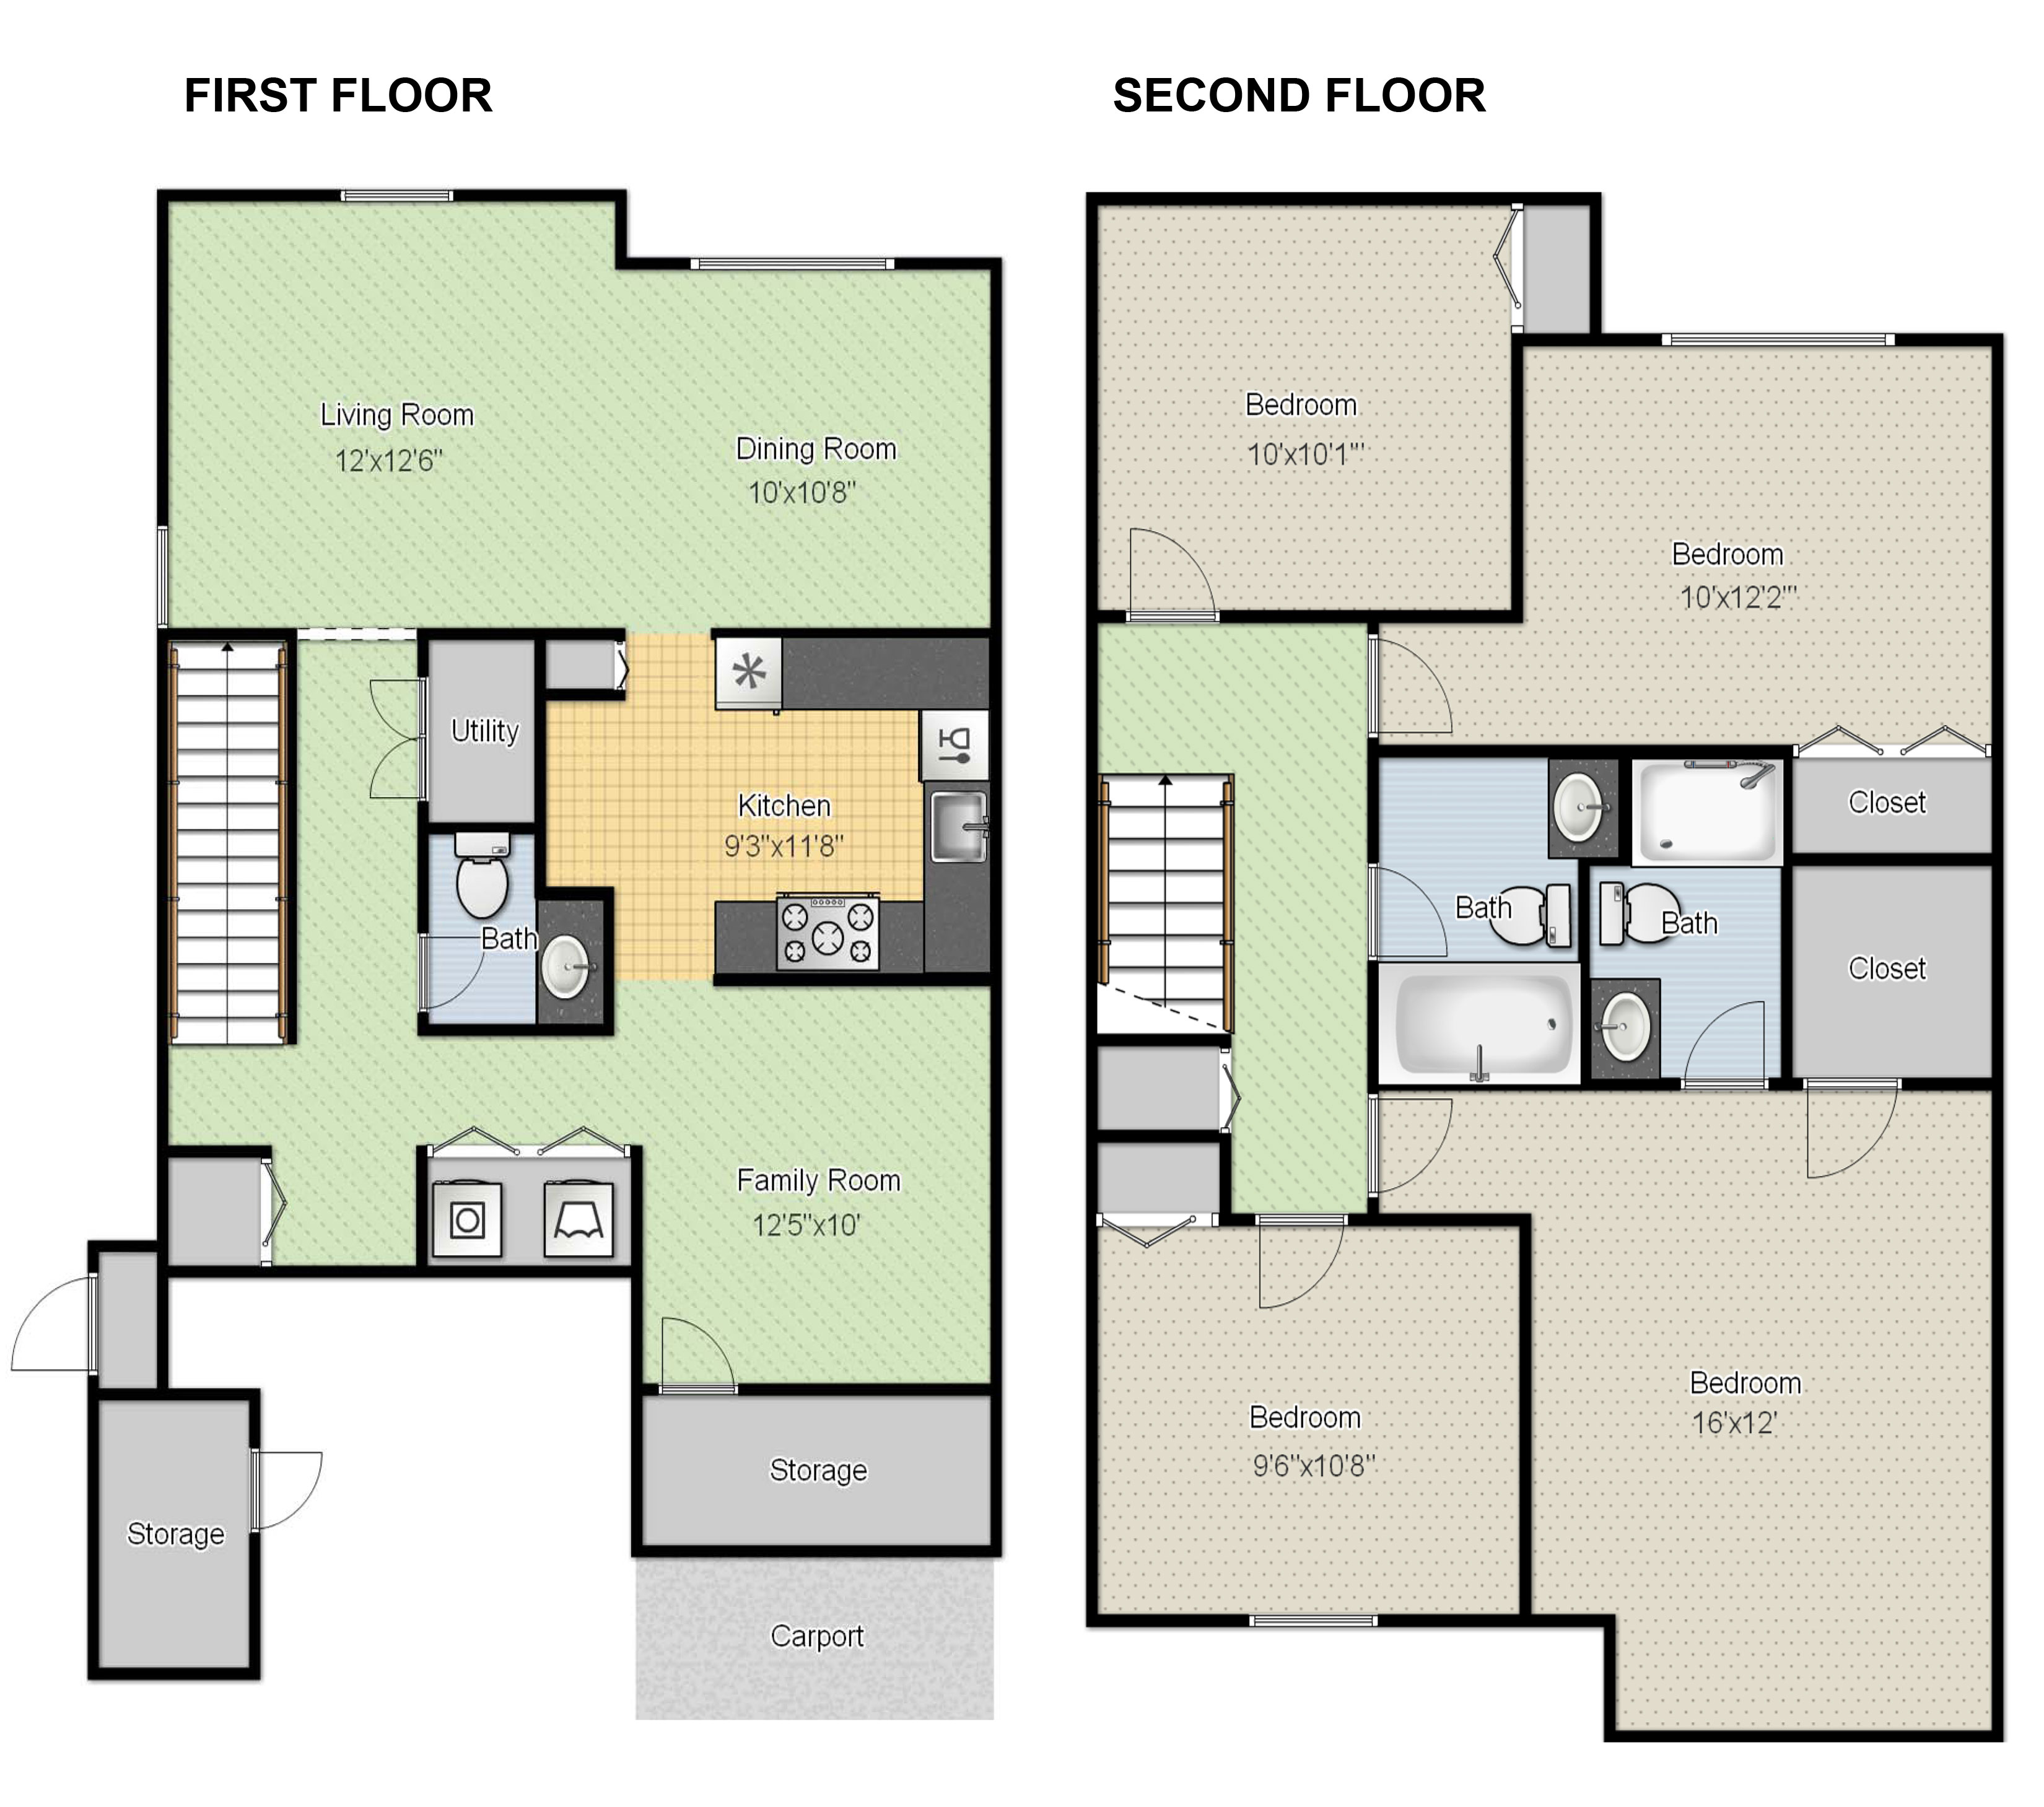 basement floor plans ideas free photo - 8